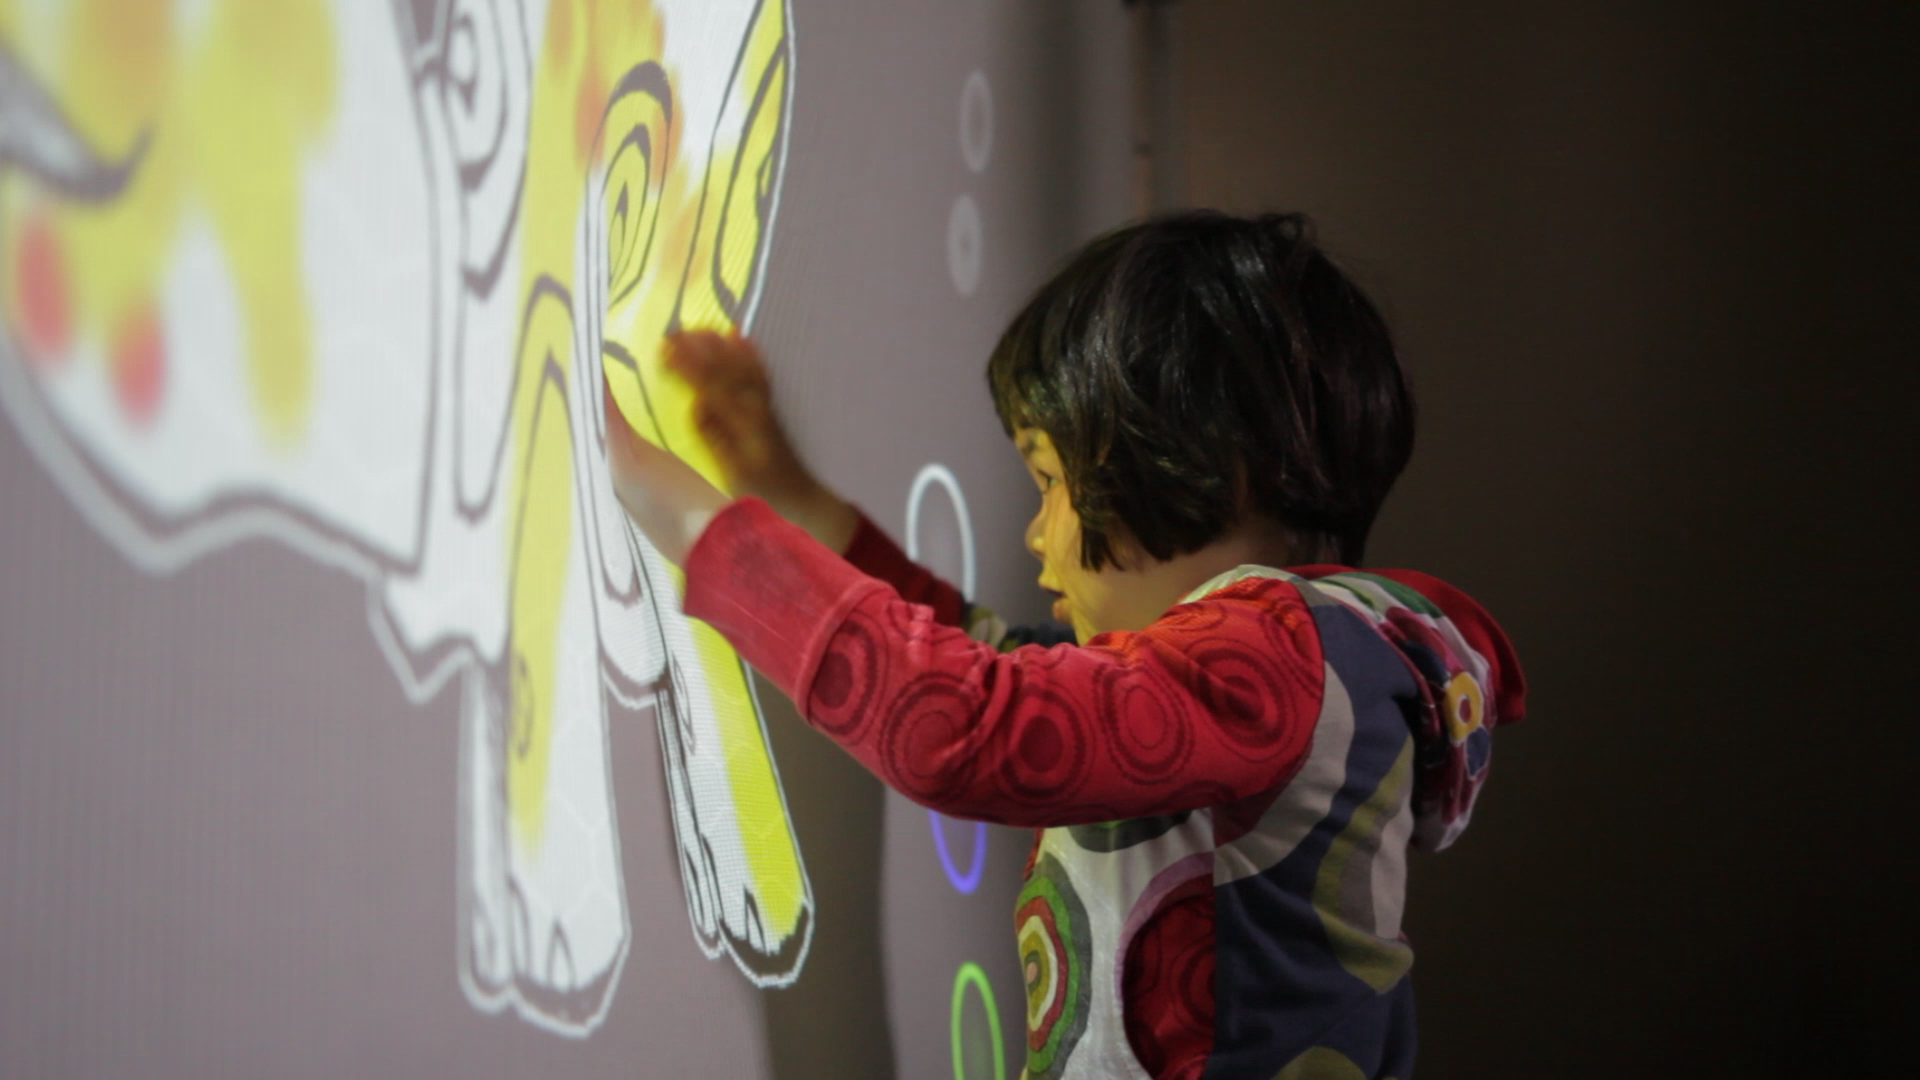 Ara playing with the  sensorySURFACE | stretchCOLOR  prototype, where pressure applied to the 2D textile determines the color being projected onto the surface.